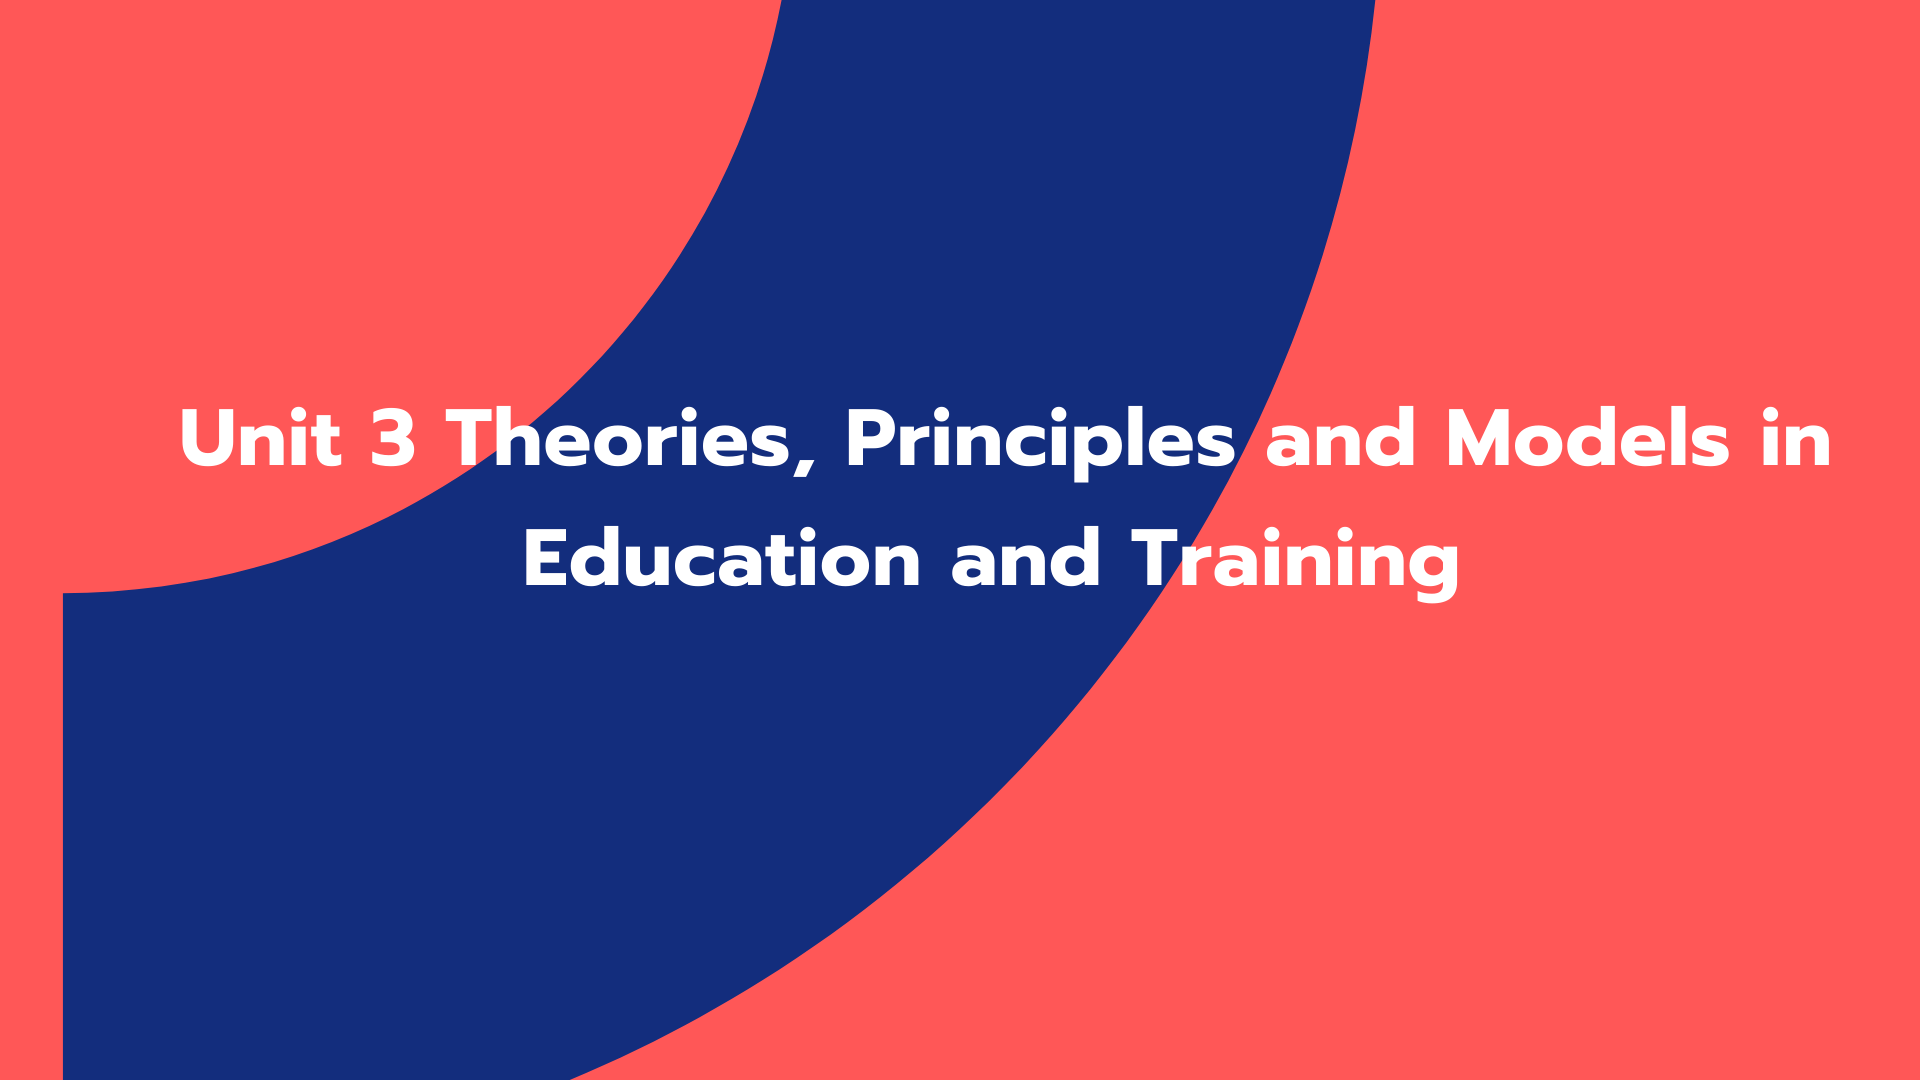 Unit 3 Theories, Principles and Models in Education and Training